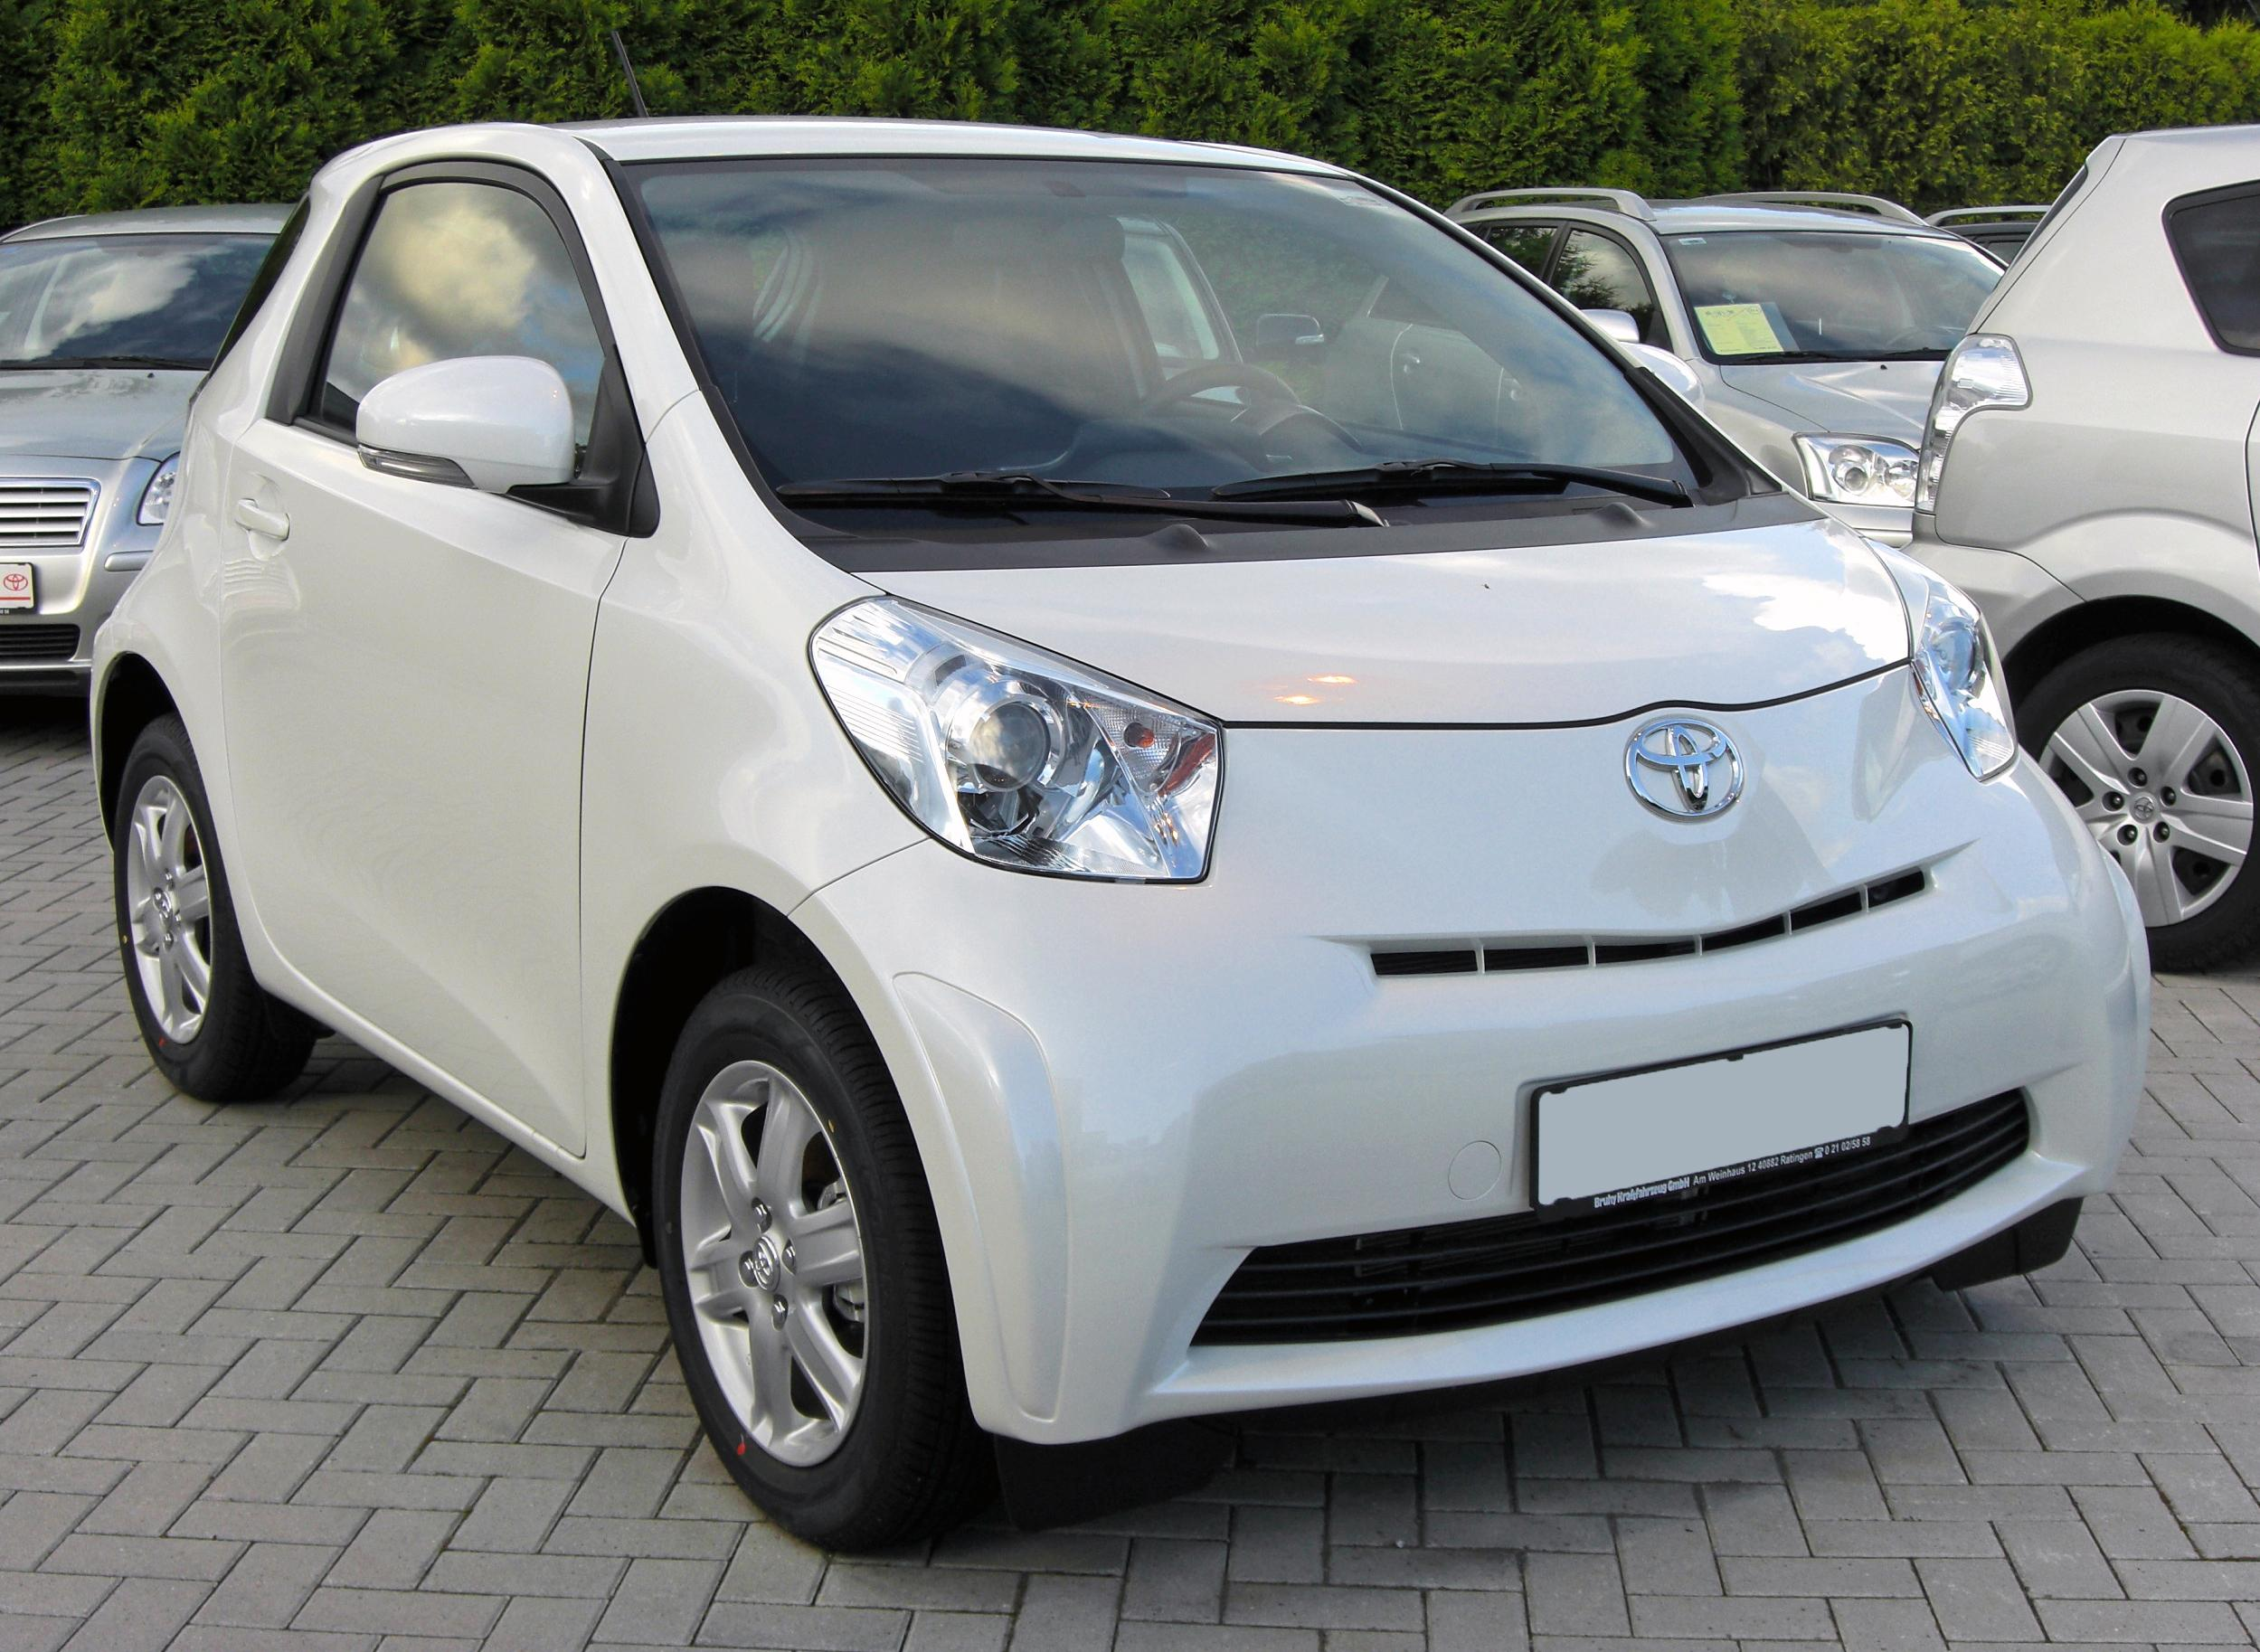 Toyota Iq Wikipedia 2013 Smart Fortwo Fuse Box